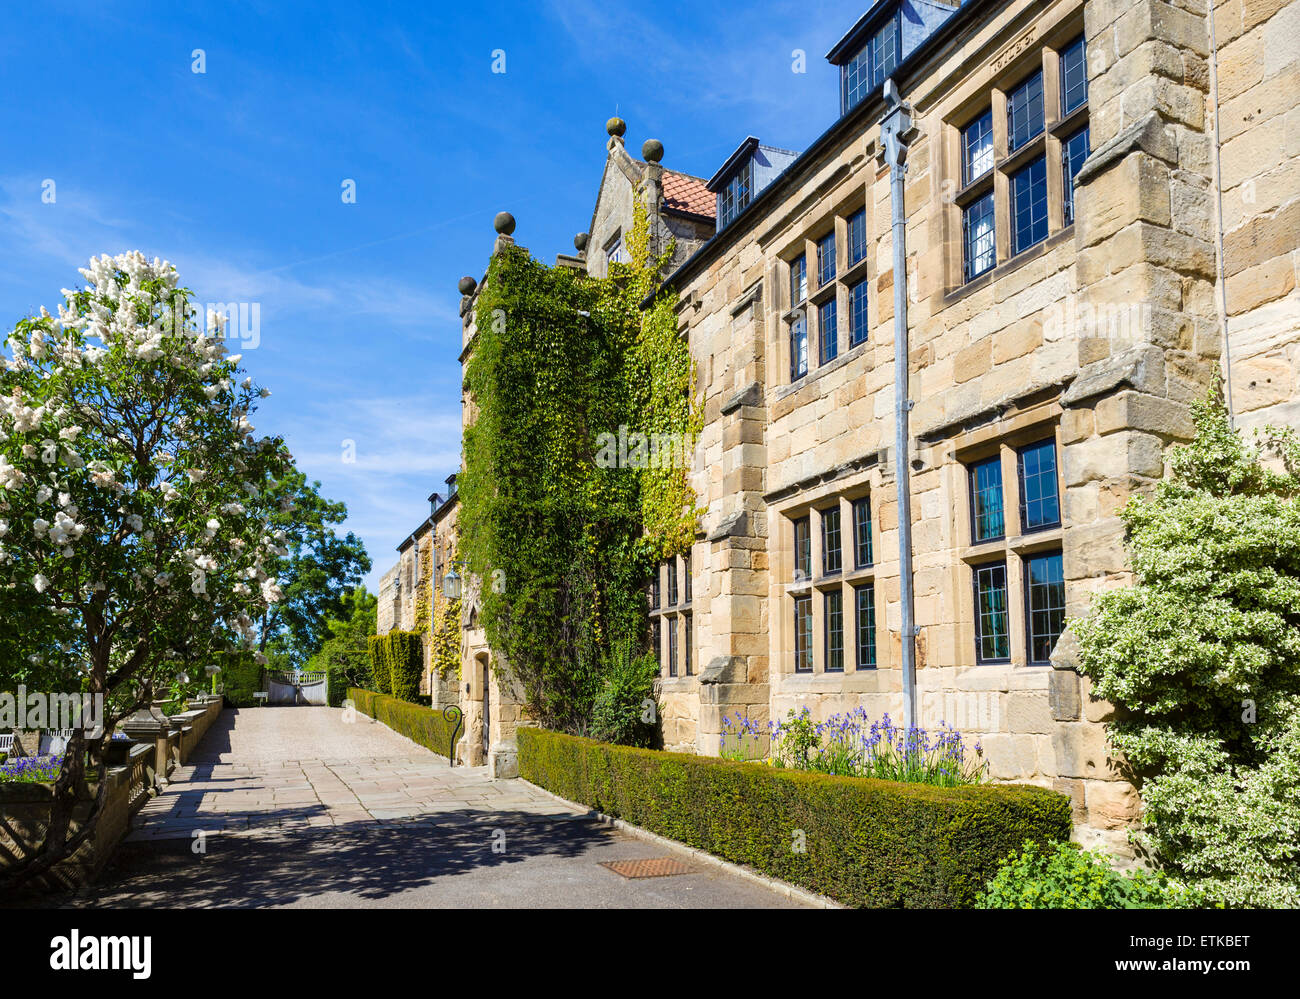 The front of the manor house at Mount Grace Priory, Osmotherley, near Northallerton, North Yorkshire, England, UK - Stock Image